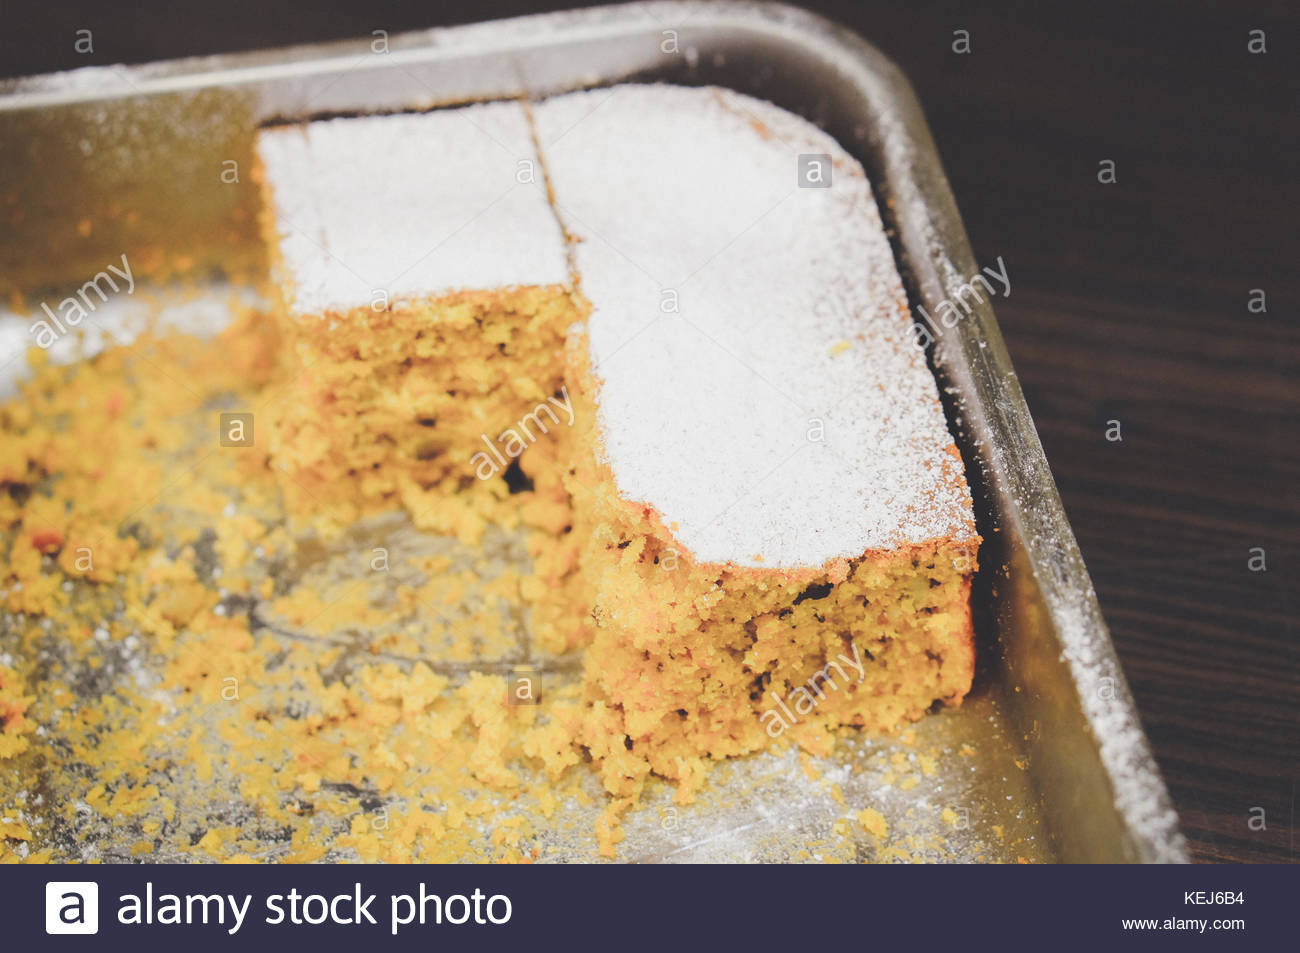 Cut parts of a carrot cake in a metal oven dish in soft focus - Stock Image